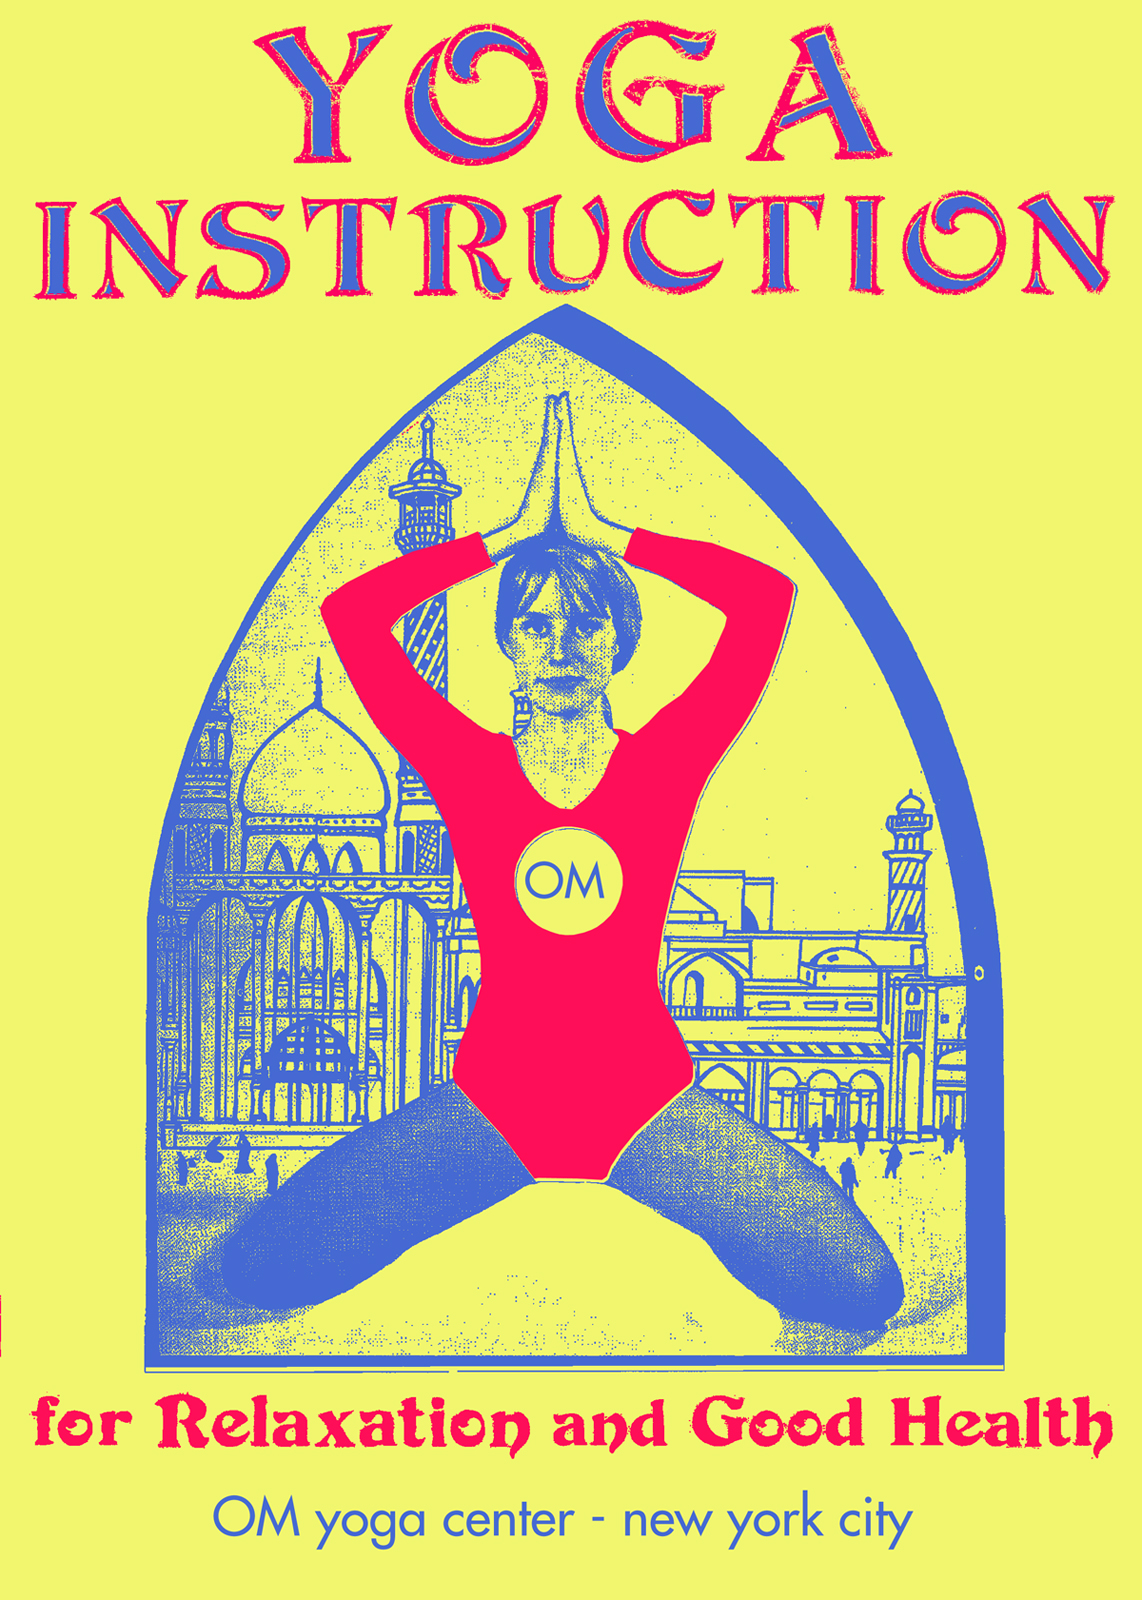 OM yoga instruction